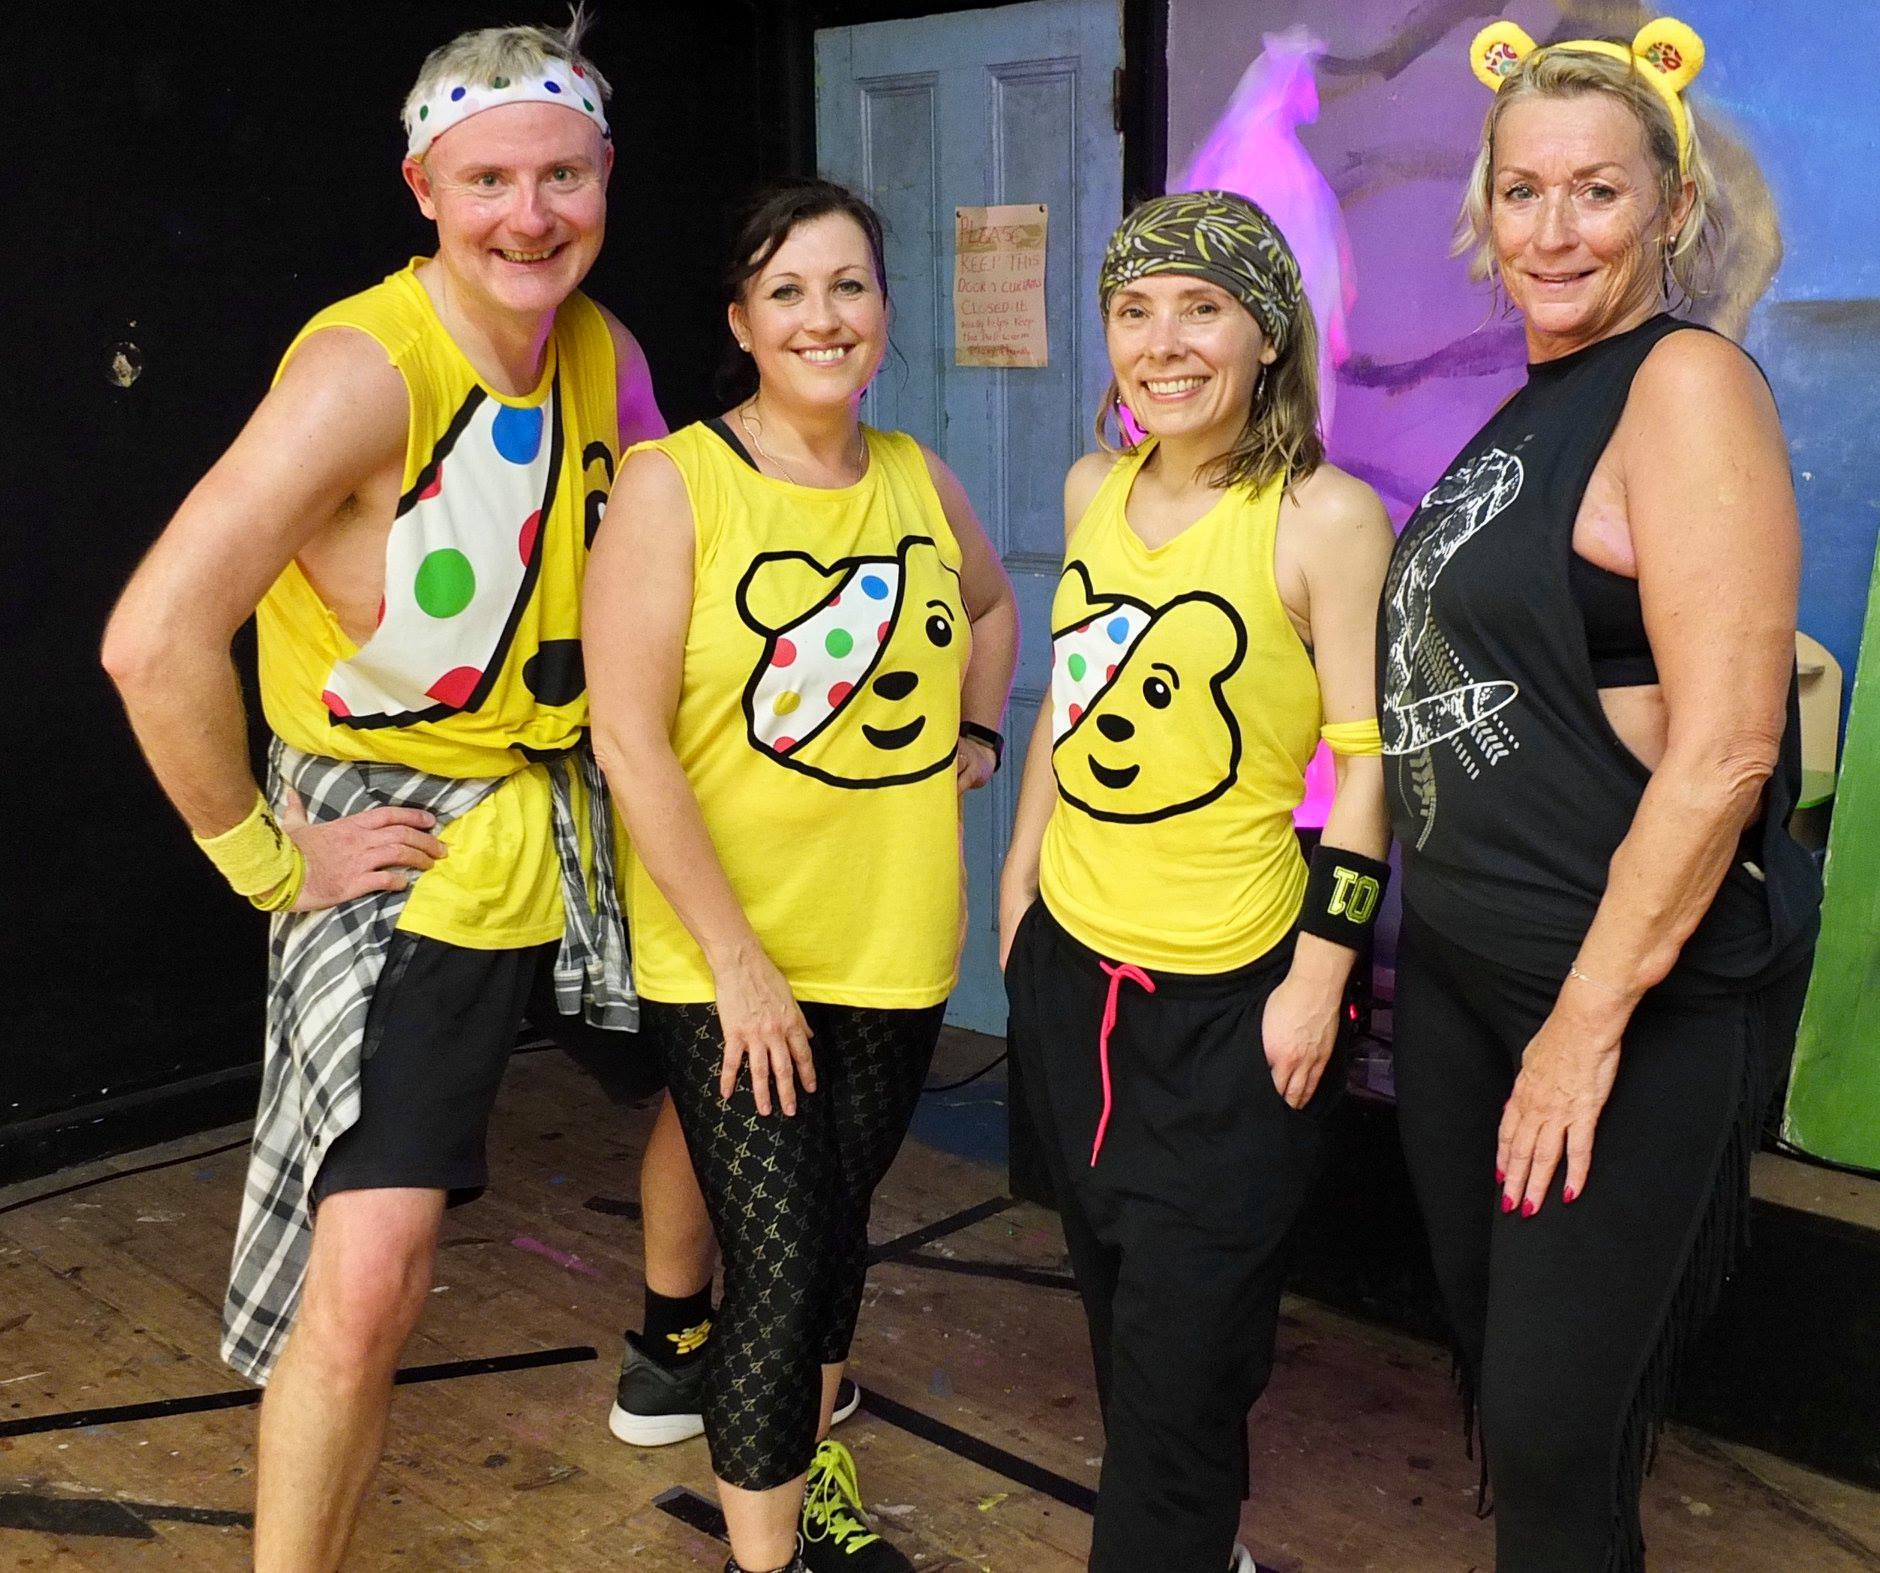 Zumba In Newquay for Children in Nee